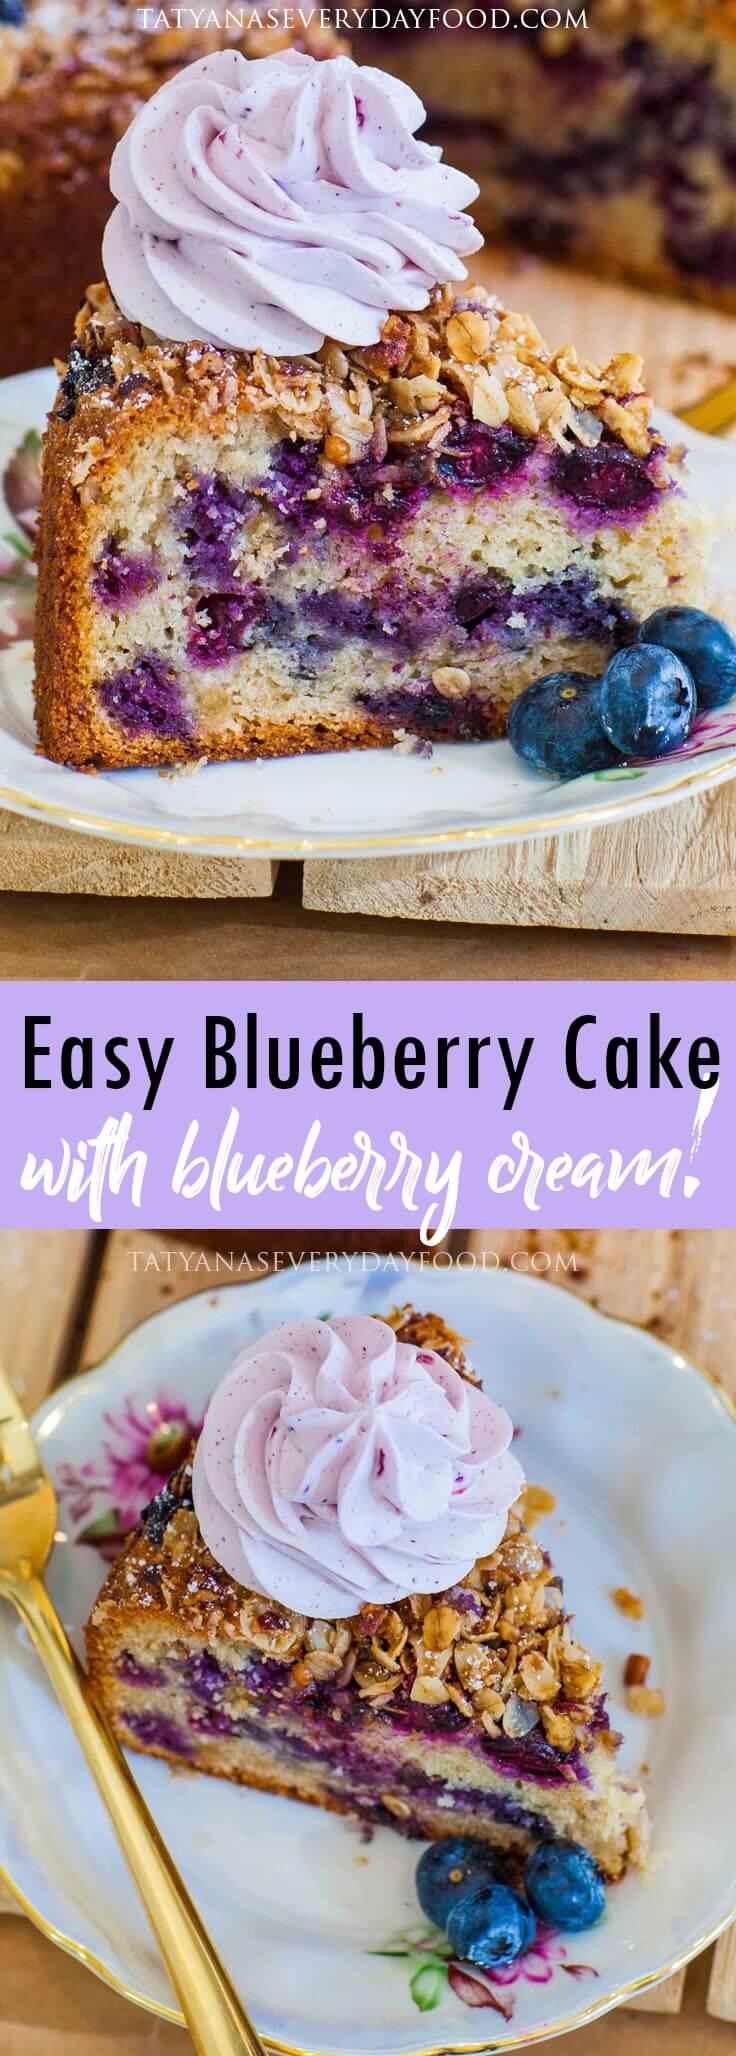 Blueberry Cake with whipped cream